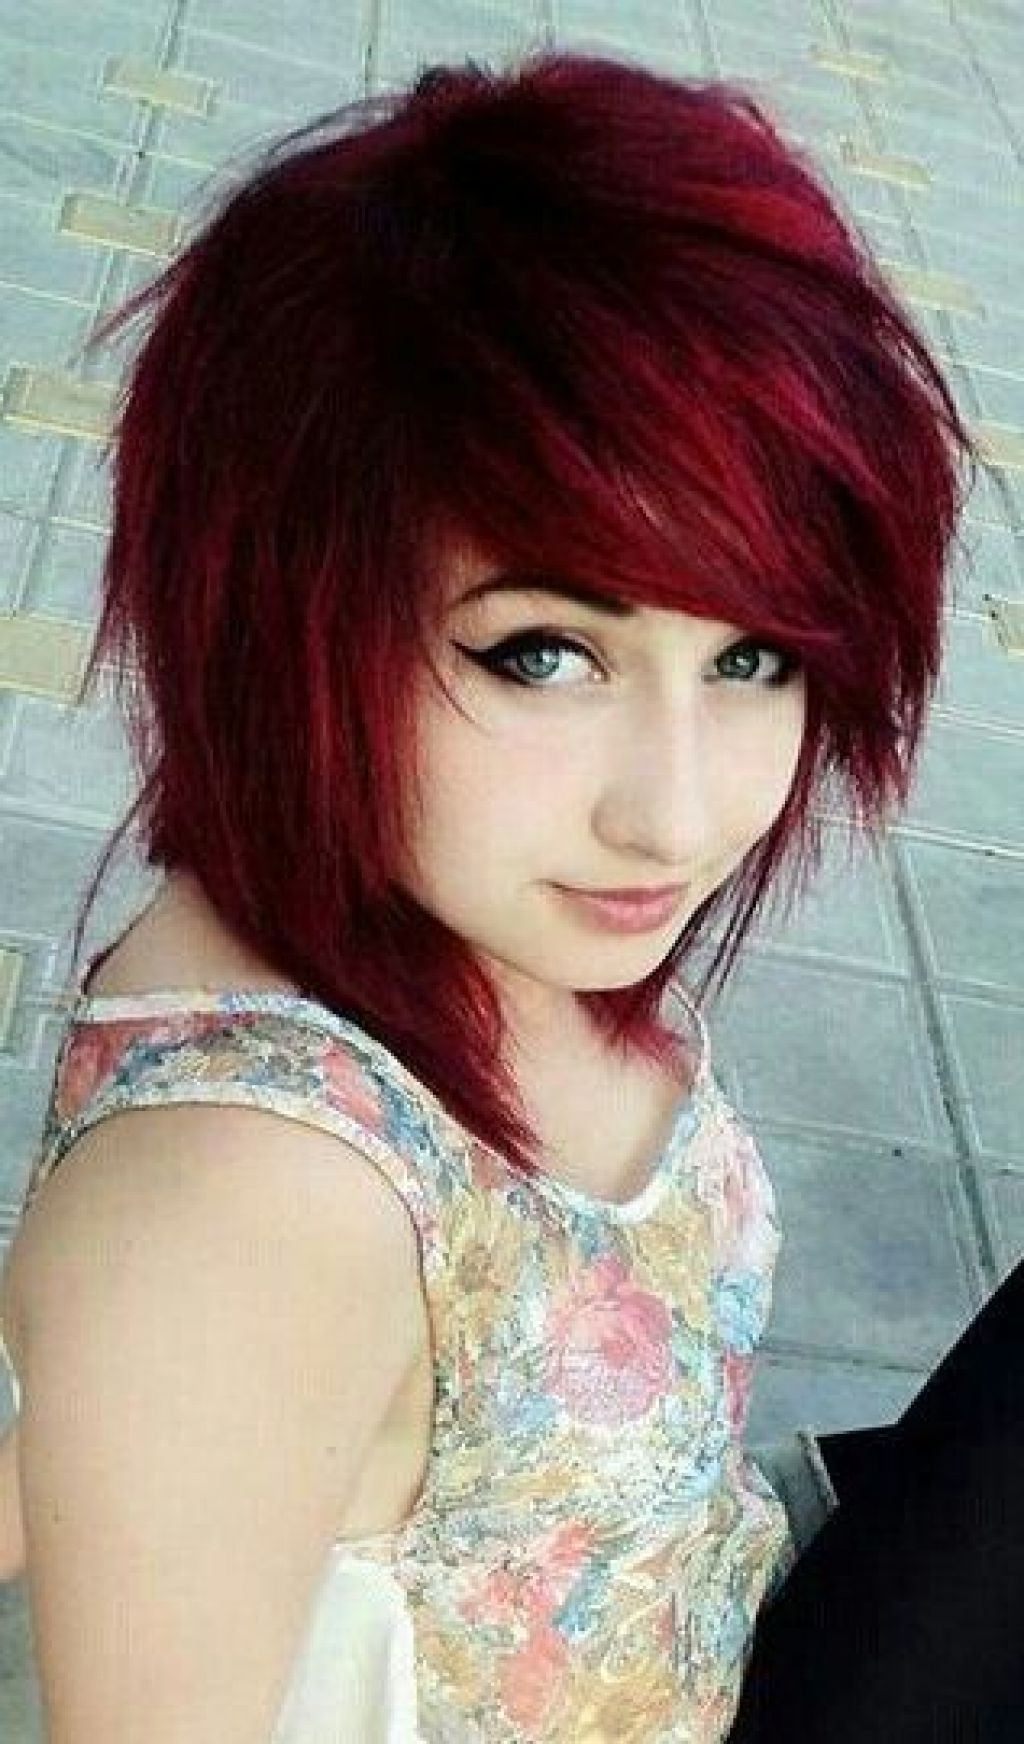 15 Cute Emo Hairstyles For Girls 2018 | Emo Hairstyles, Emo And Intended For Latest Emo Pixie Hairstyles (View 1 of 15)